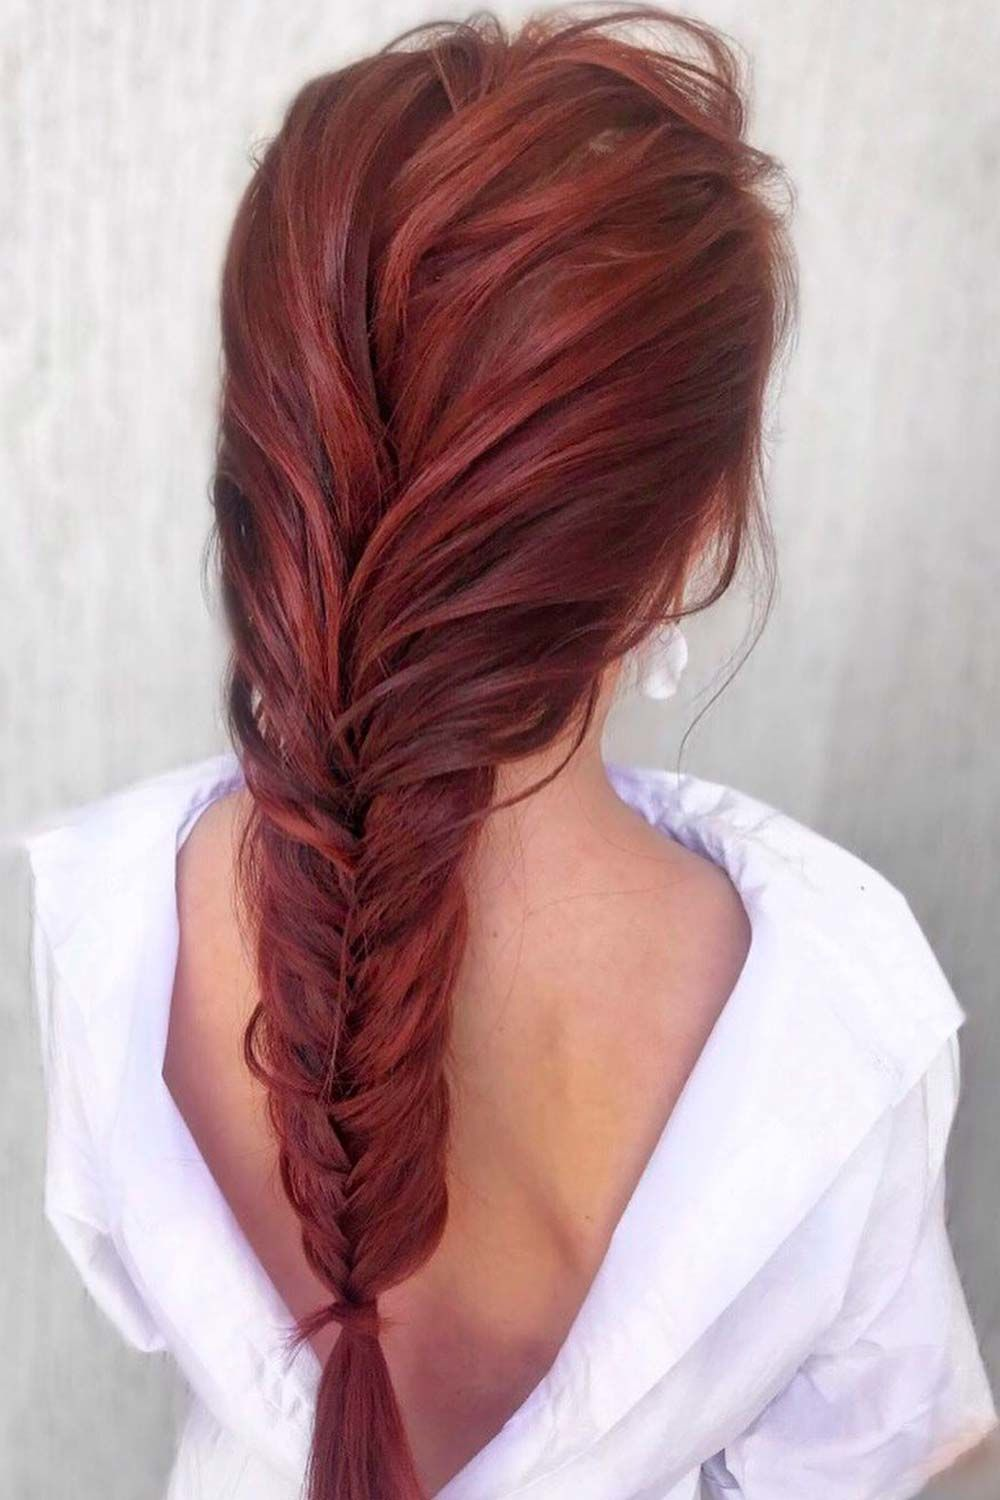 Hairstyles With Fishtail Braid